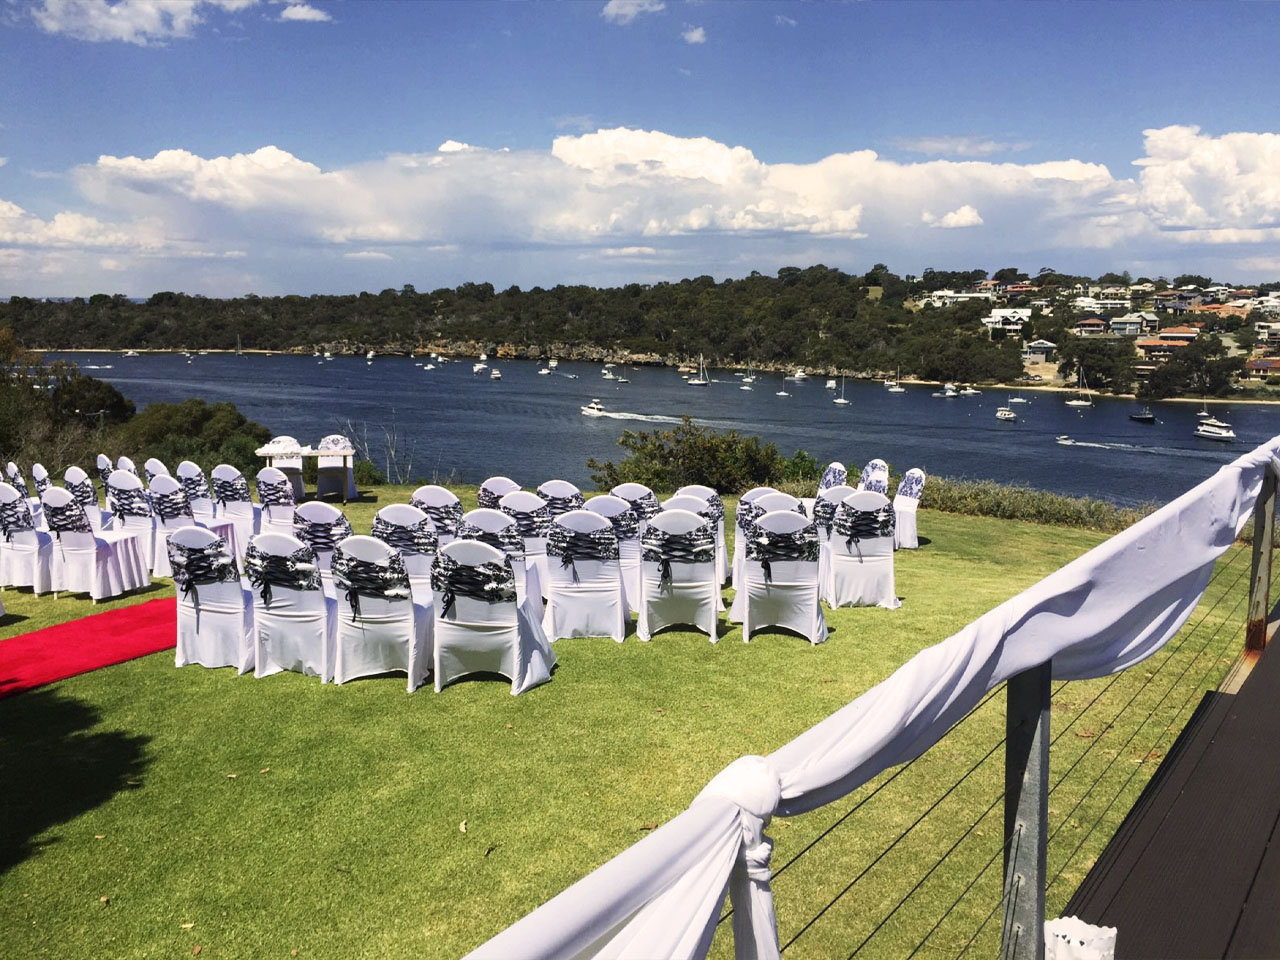 Outdoor seating for wedding with white seats overlooking river